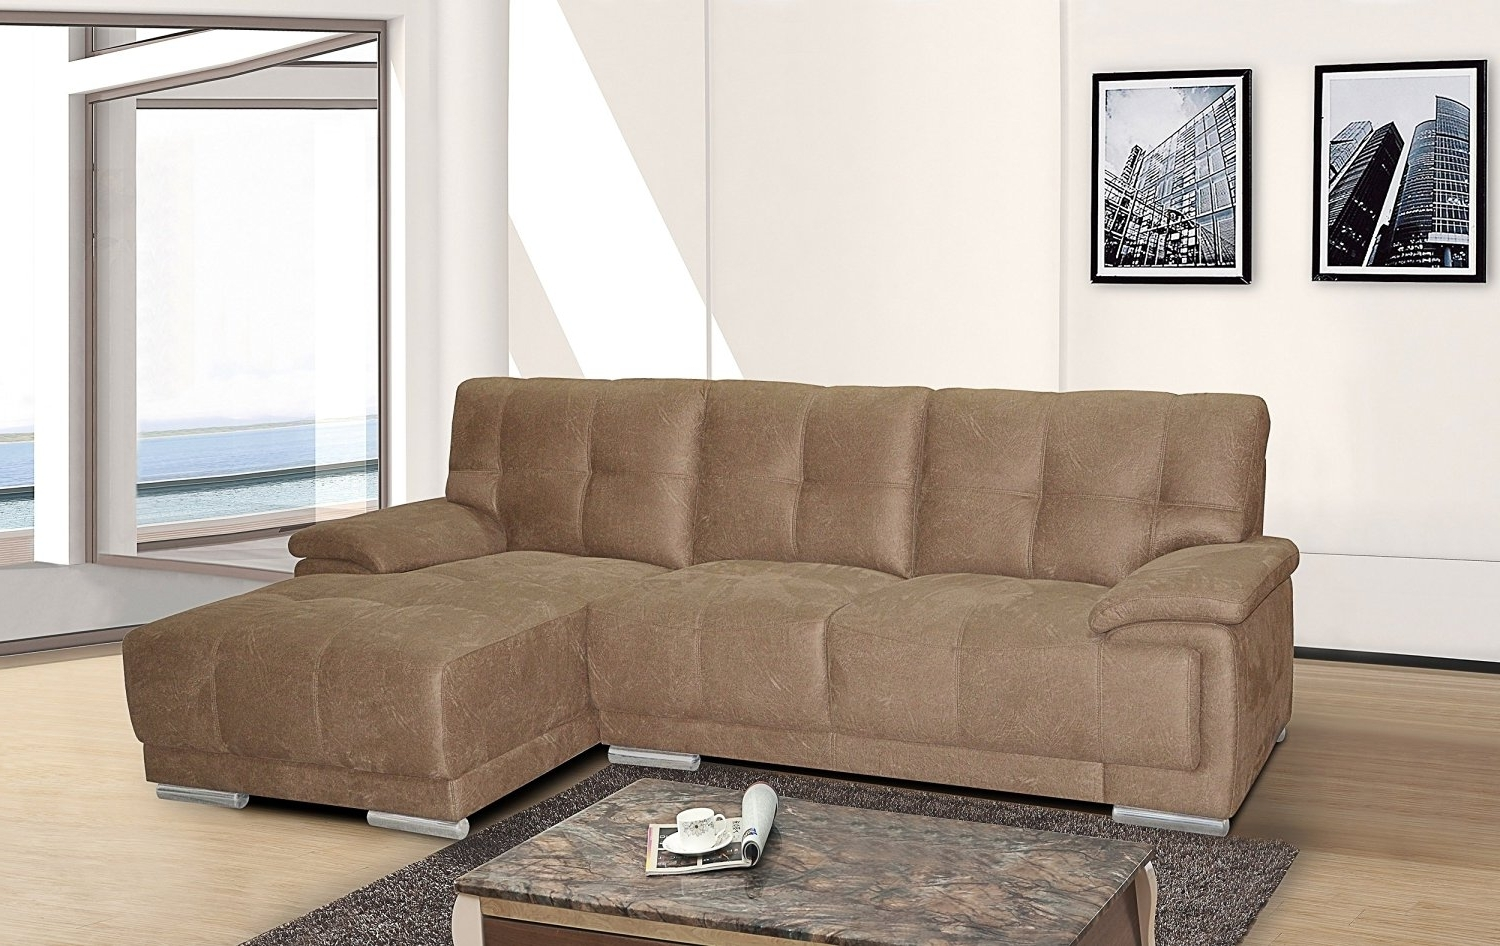 Newest Cheap Chaise Sofas Intended For Cheap Chaise Sofa, Find Chaise Sofa Deals On Line At Alibaba (View 6 of 15)